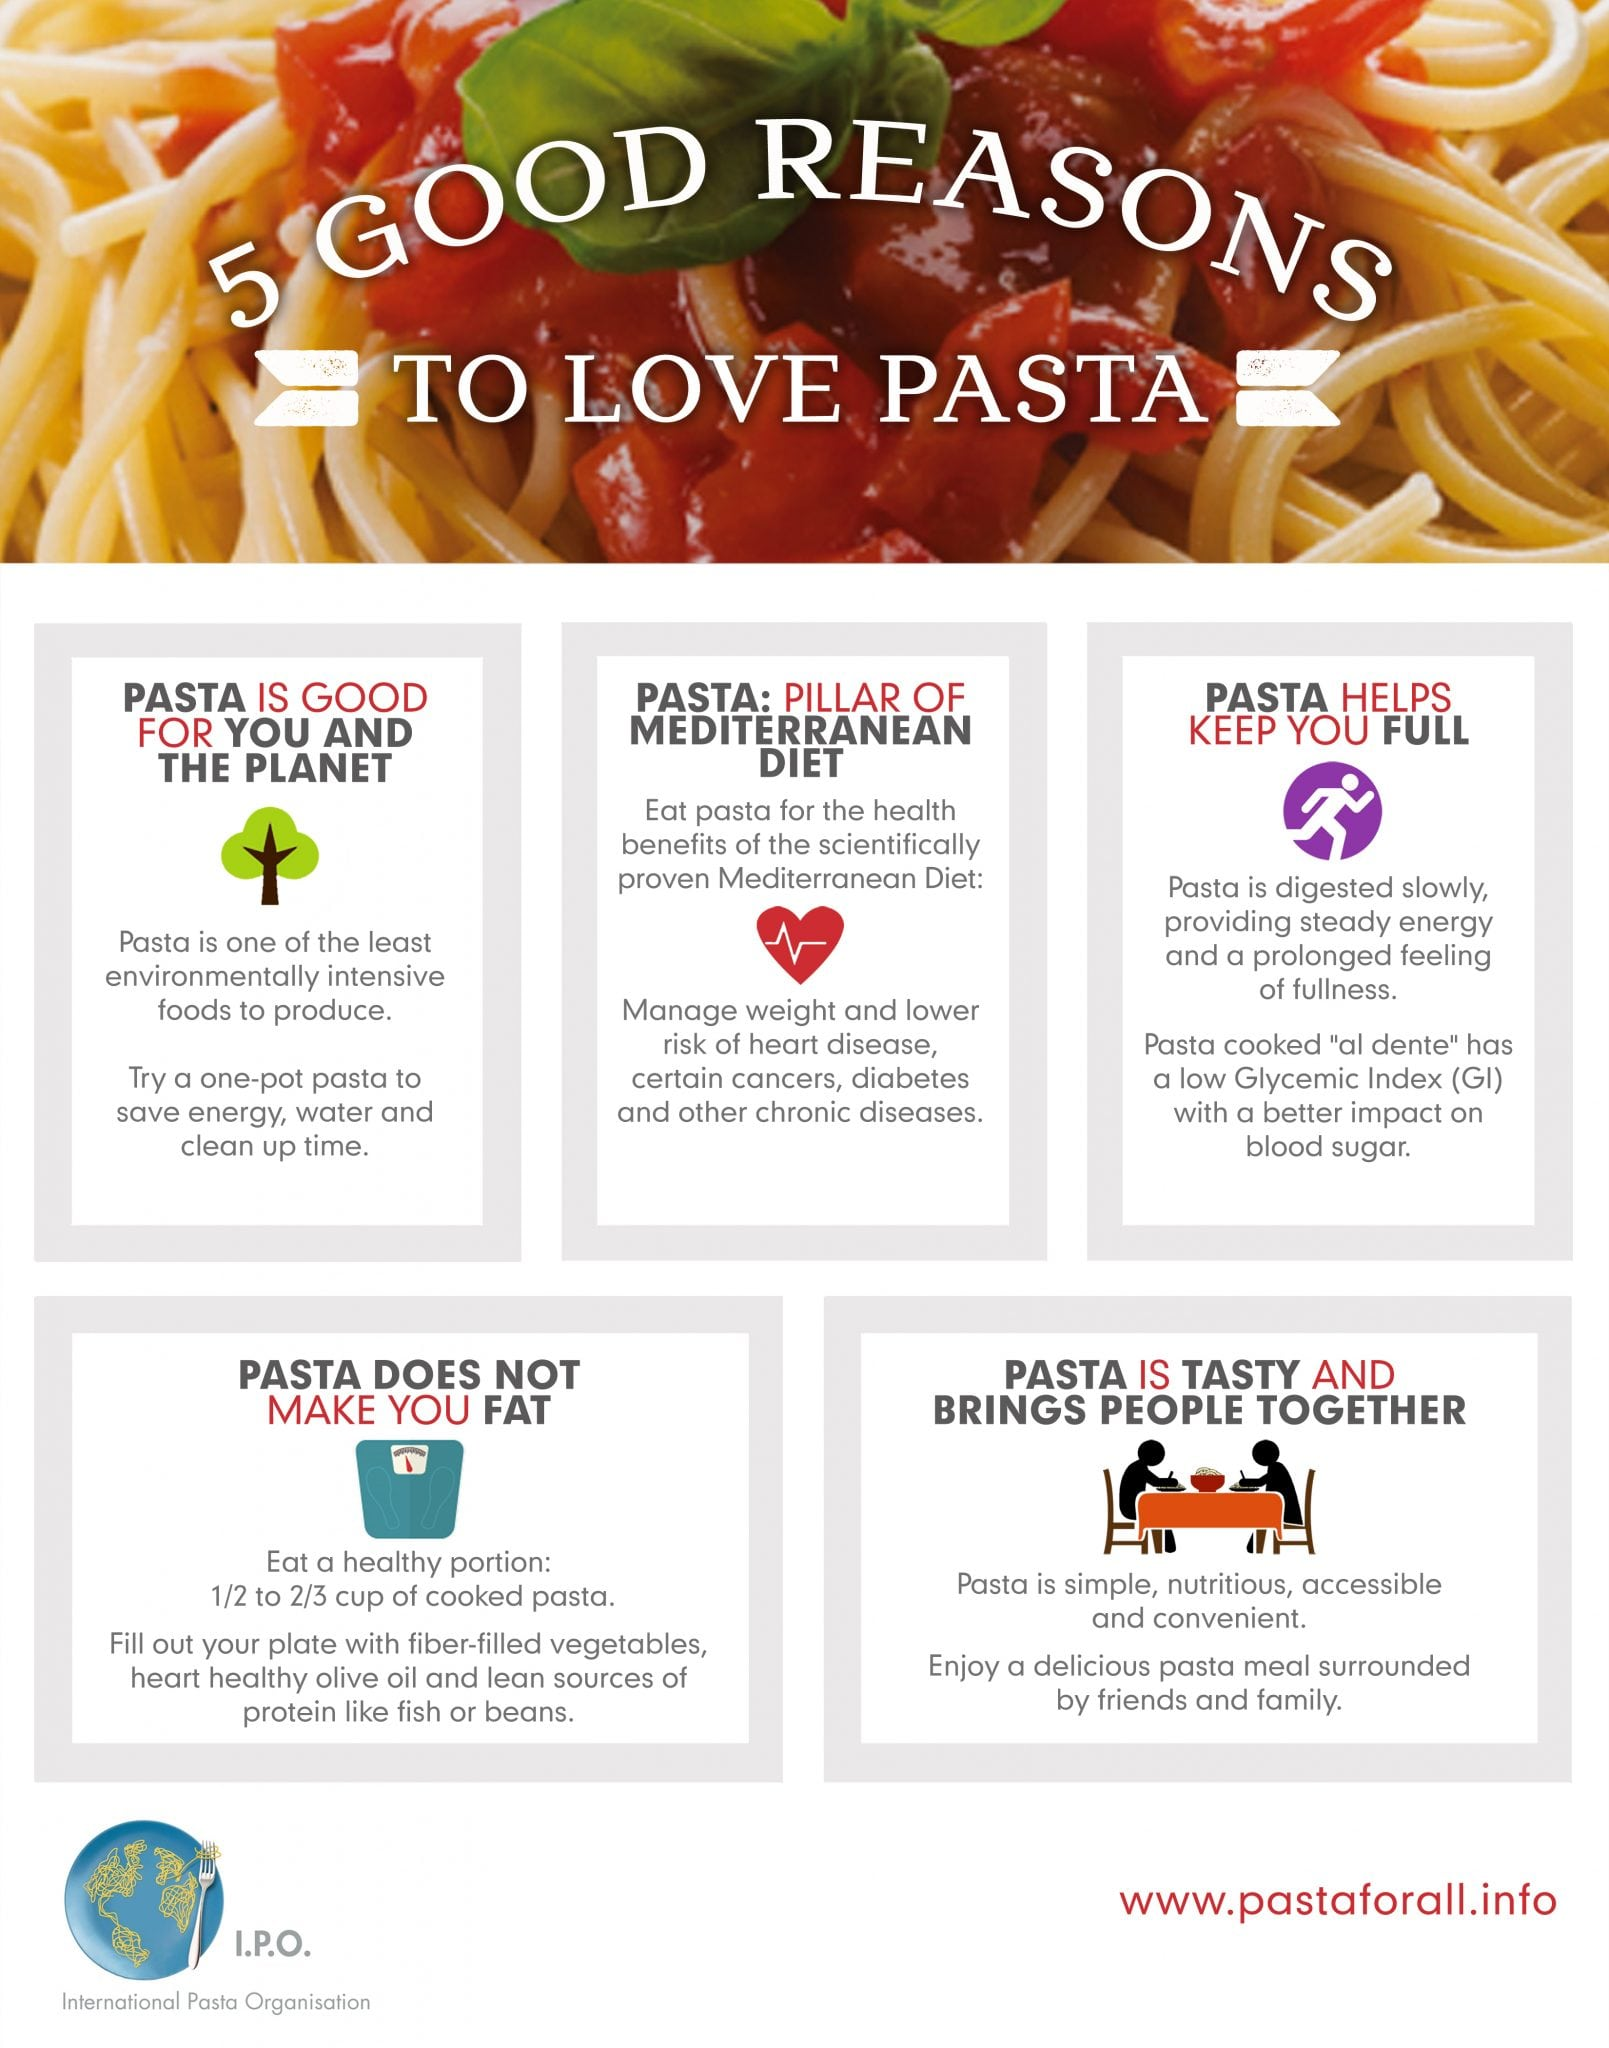 5 good reasons to love Pasta